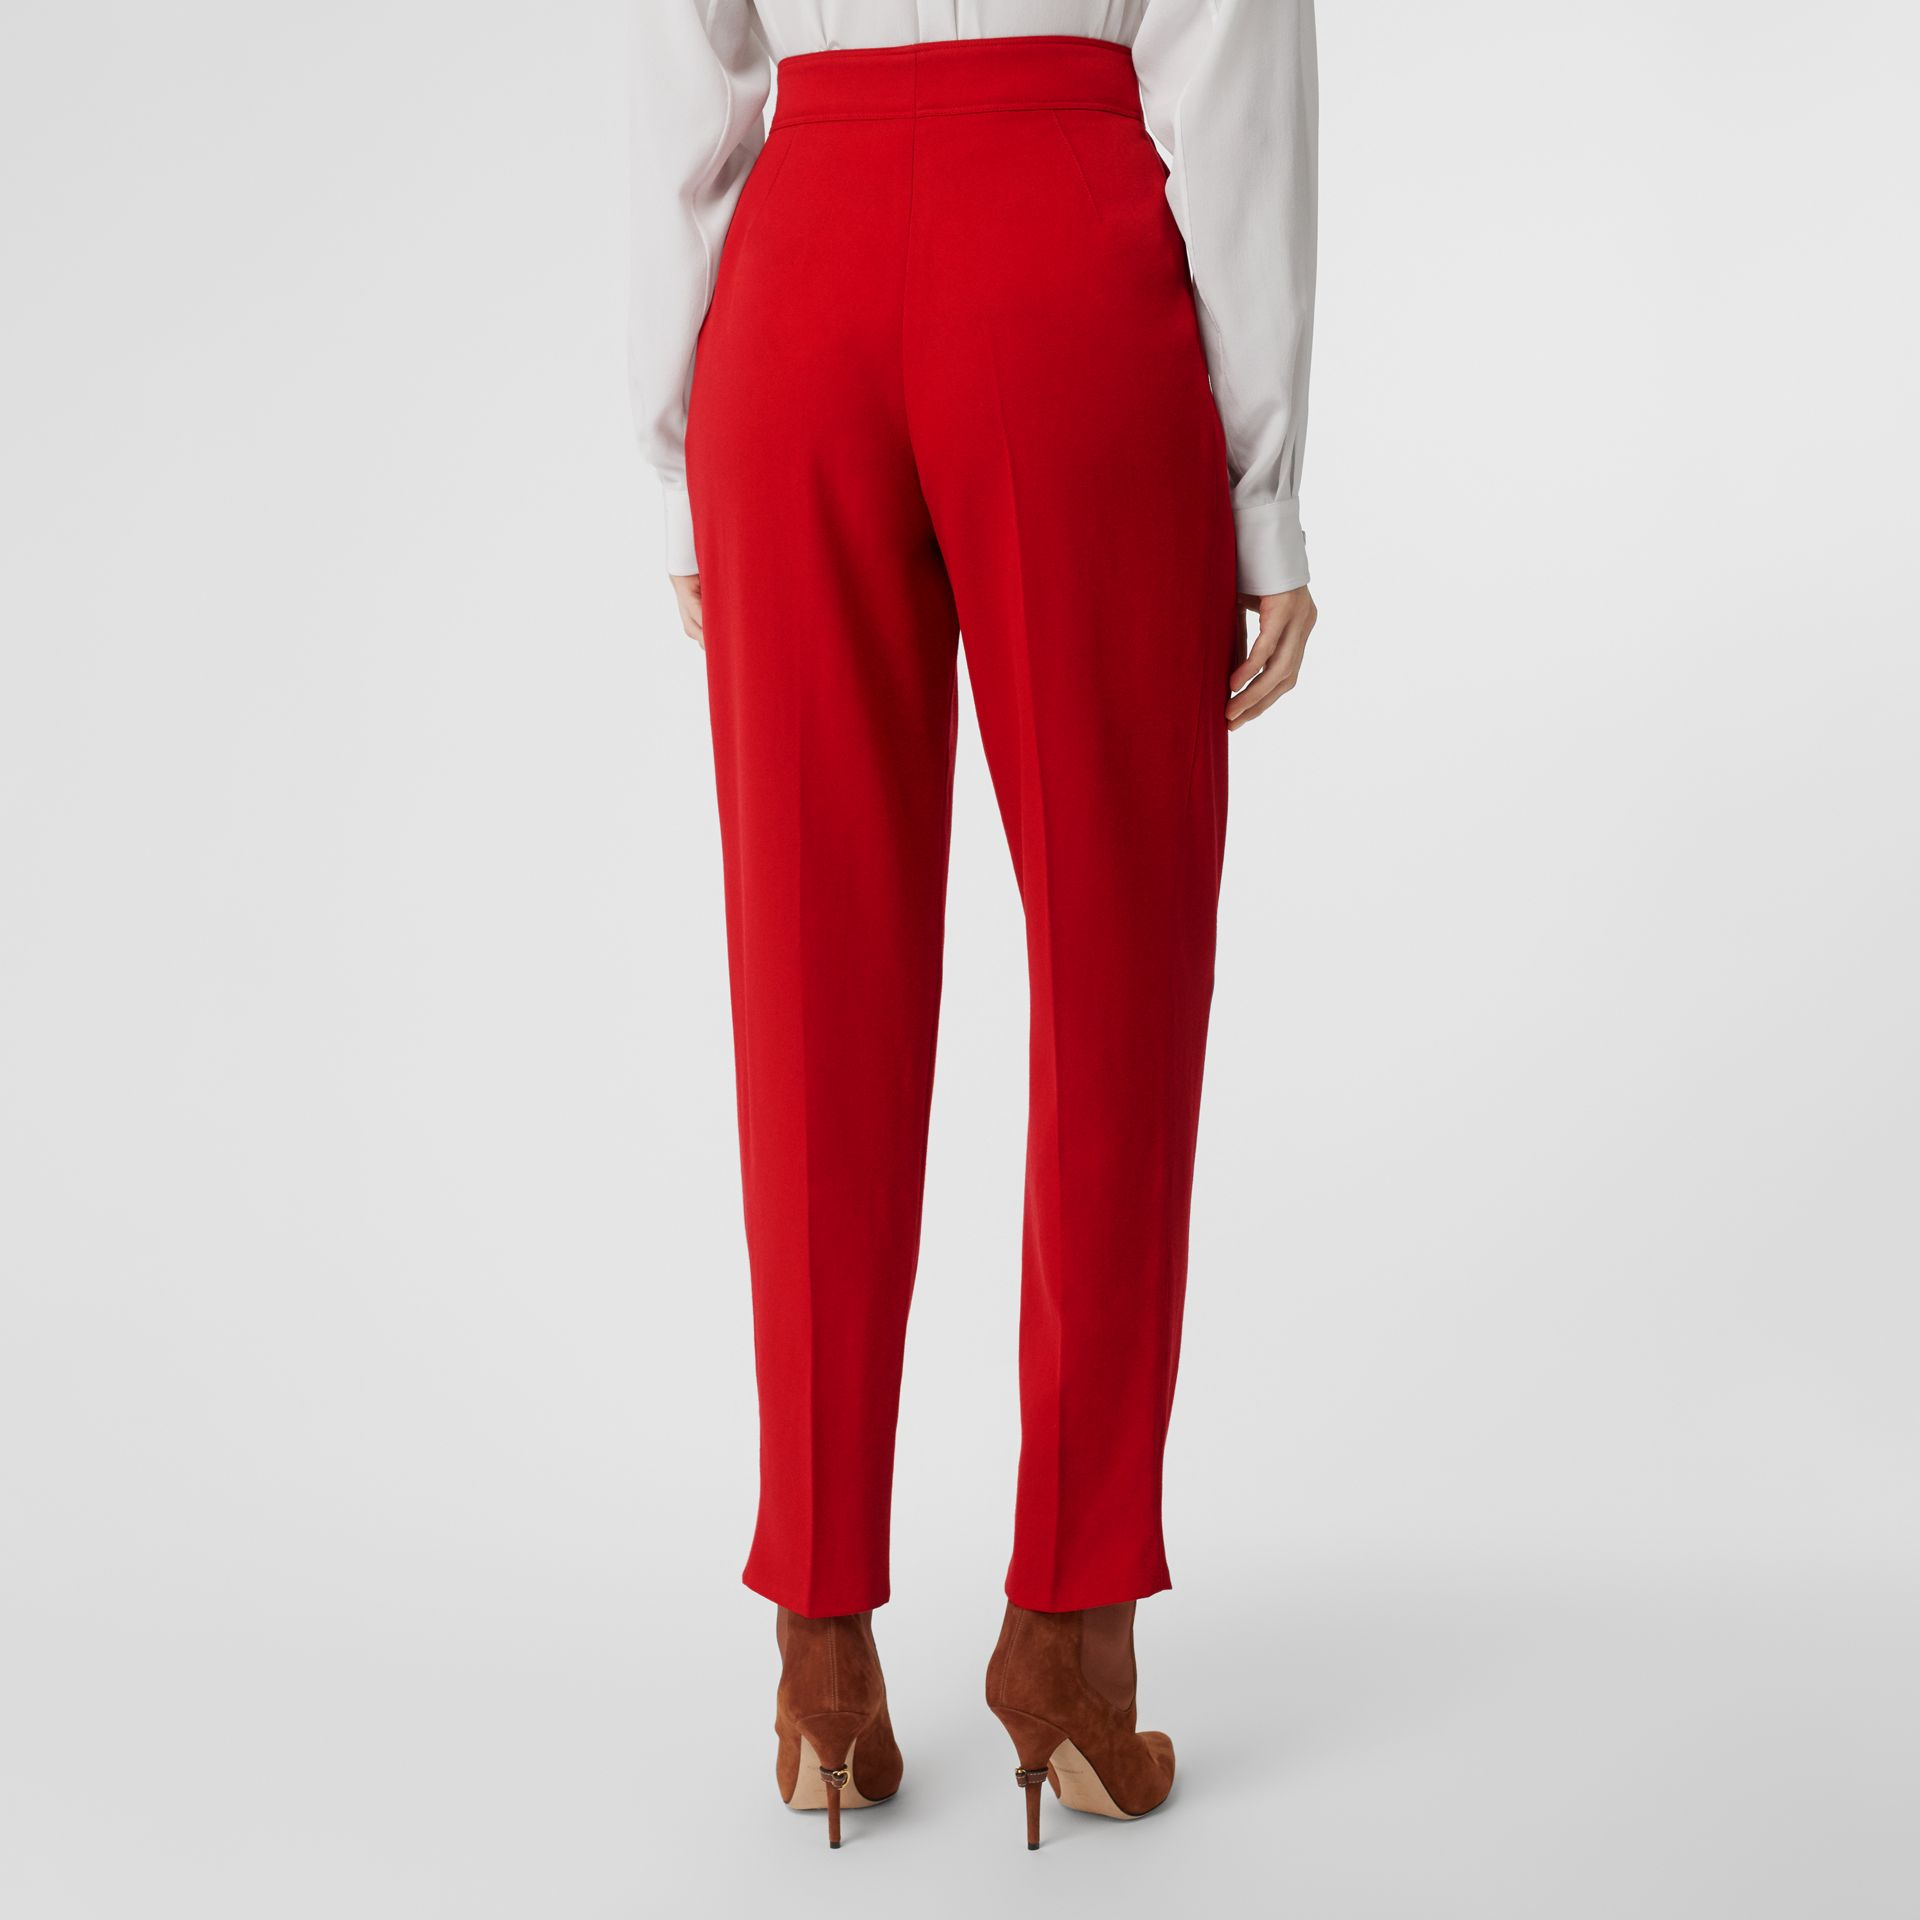 Pleat Detail Wool Tailored Trousers in Bright Red - Women | Burberry - gallery image 2